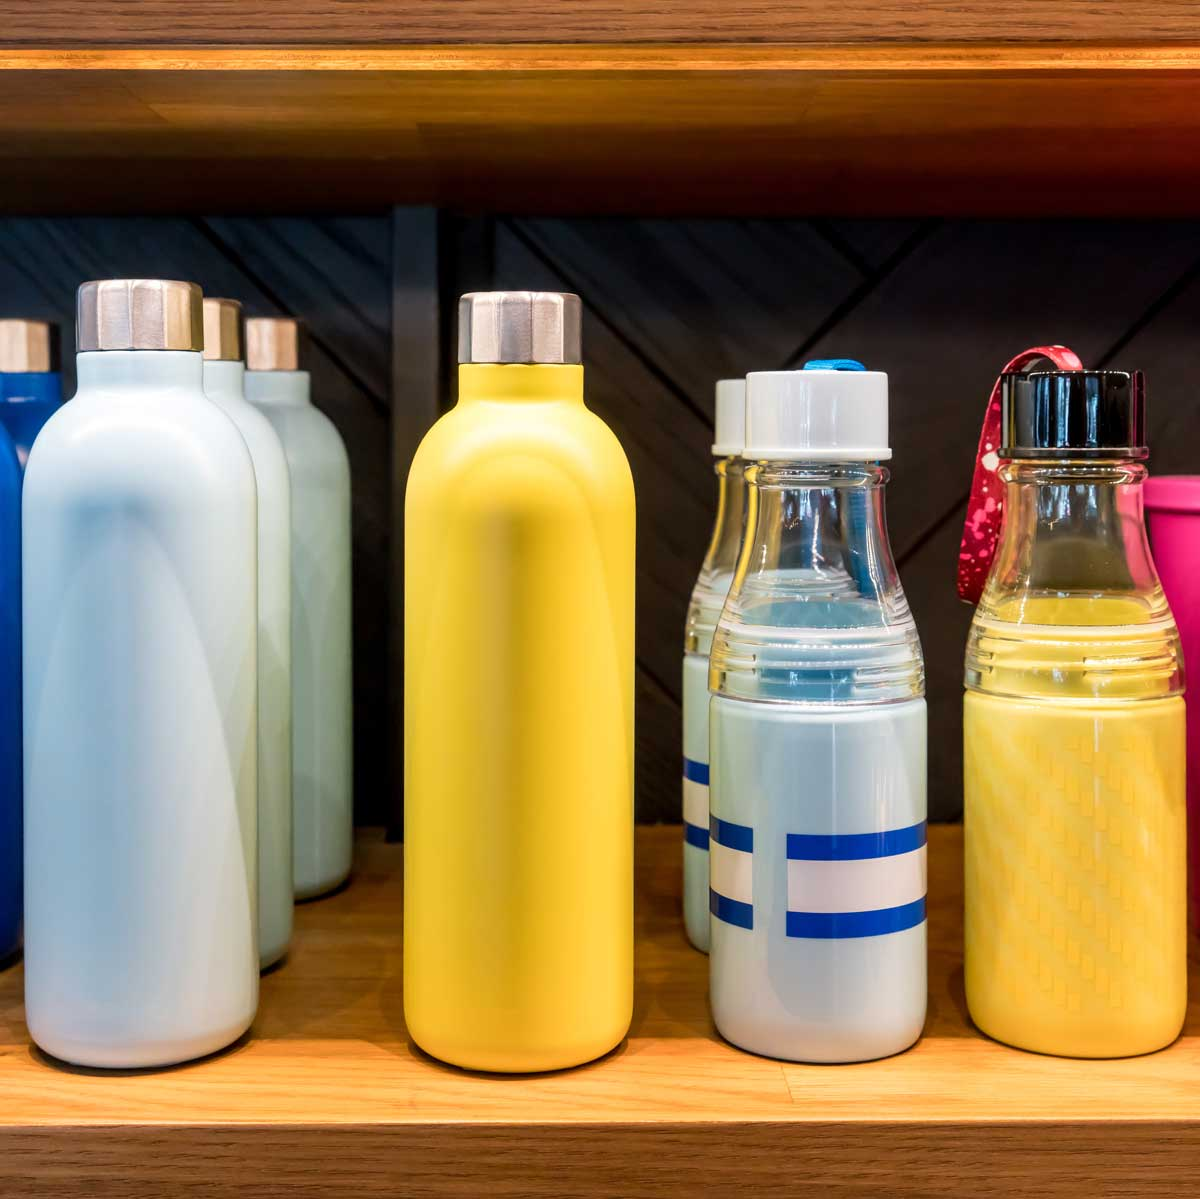 A shelf with several water bottles on it